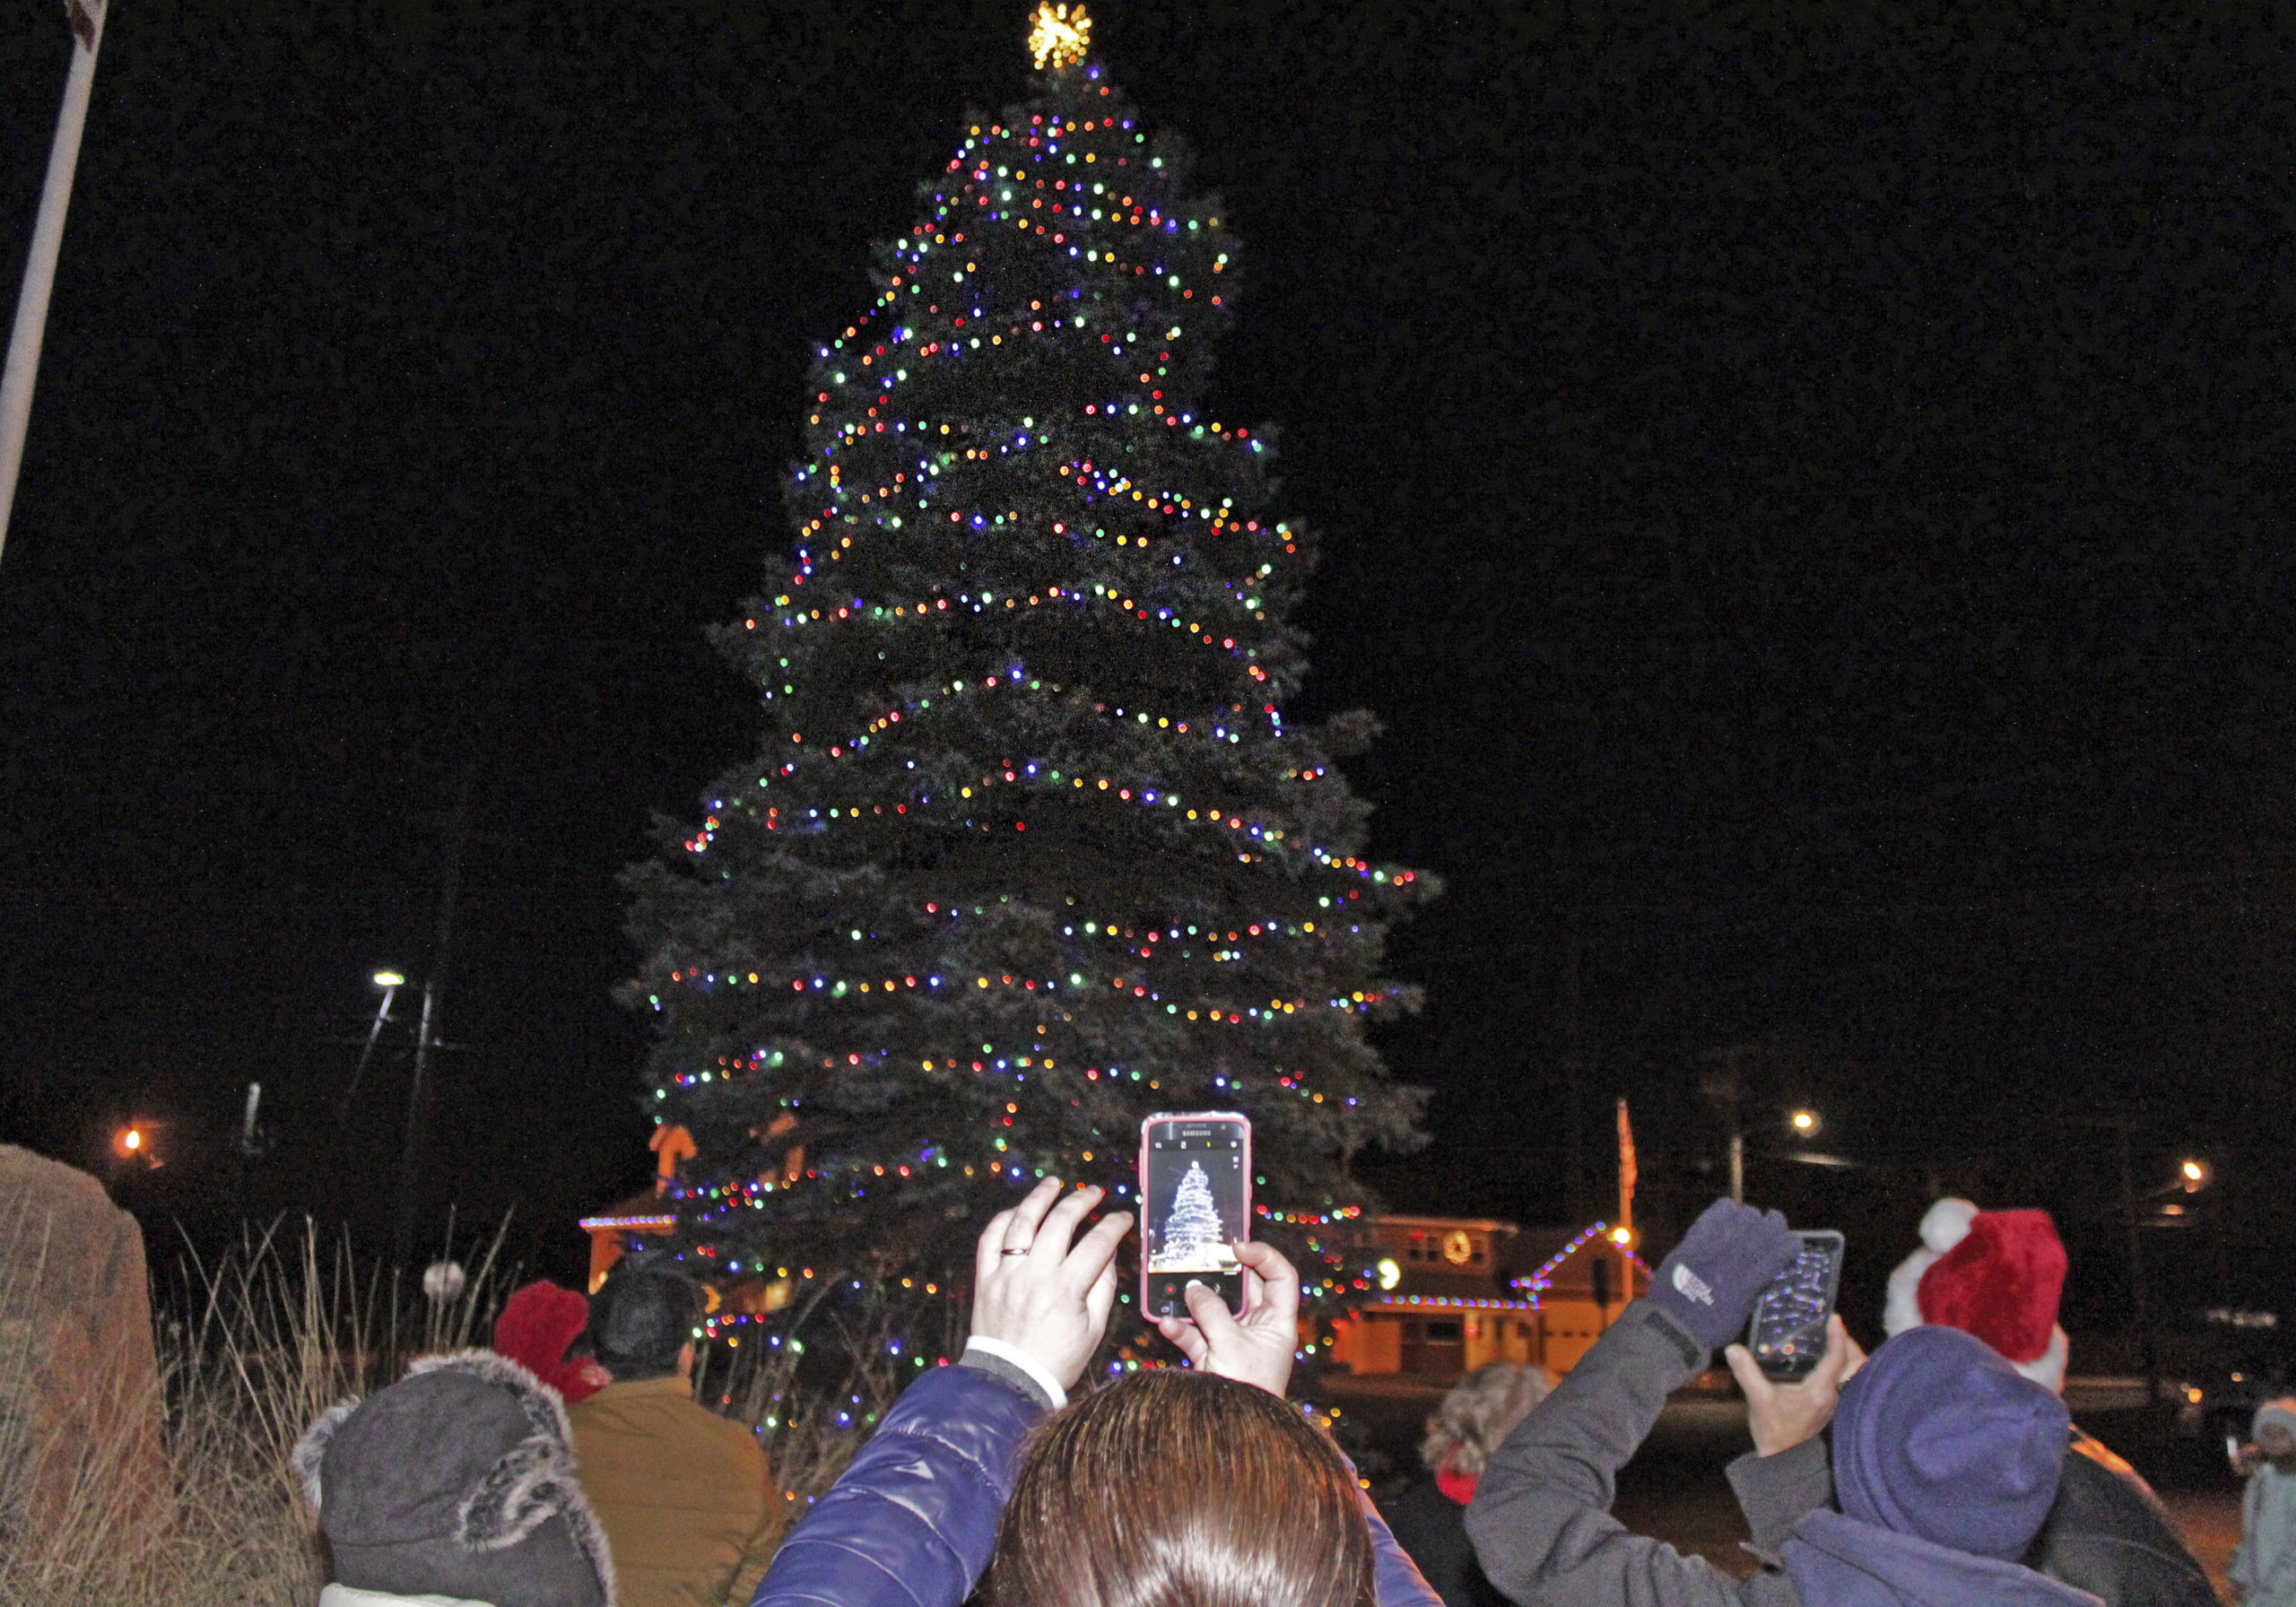 The crowd snaps photos as the tree is lit.